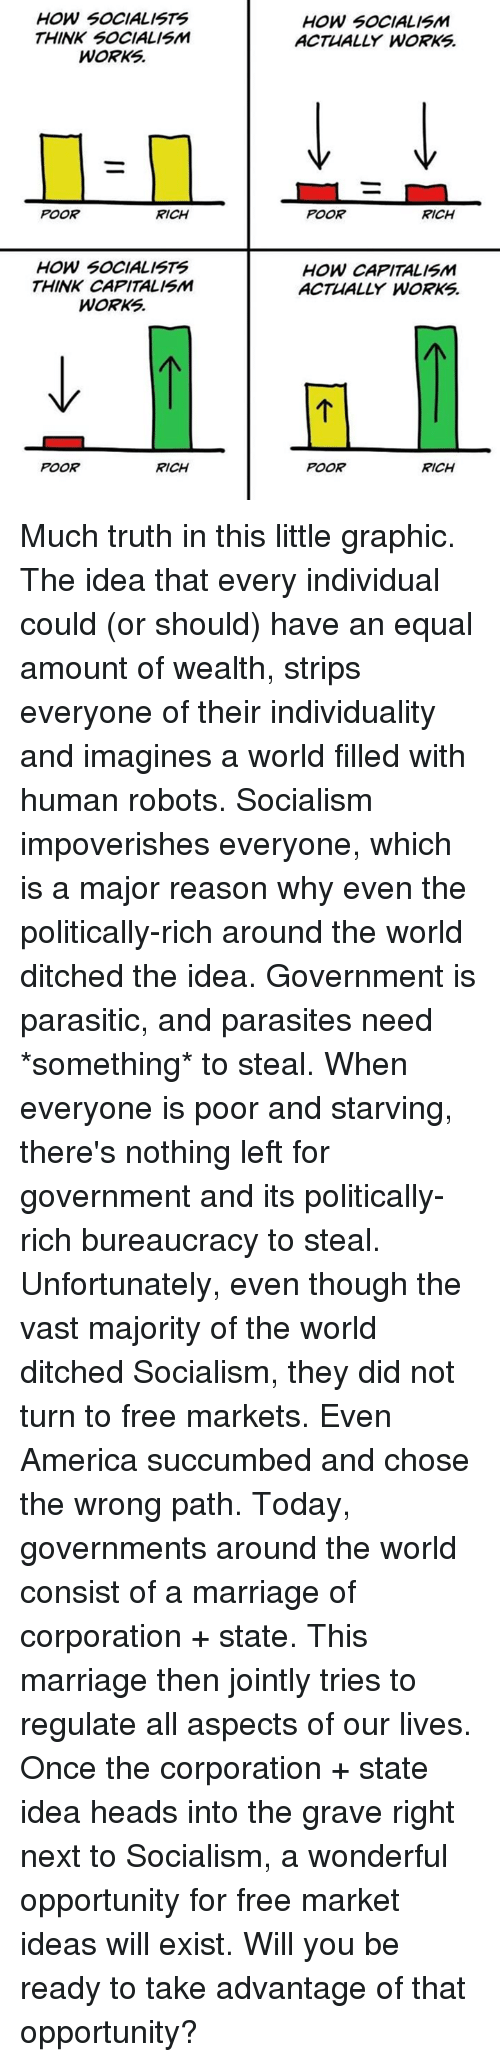 Ditched: HOW SOCIALISTS  THINK SOCIALISM  WORKS.  HOW SOCIALISM  ACTUALLY WORKS.  POOR  RICH  POOR  RICH  HOW SOCIALISTS  THINK CAPITALISM  WORKS  HOW CAPITALISM  ACTUALLY WORKS  POOR  RICH  POOR  RICH Much truth in this little graphic.  The idea that every individual could (or should) have an equal amount of wealth, strips everyone of their individuality and imagines a world filled with human robots.  Socialism impoverishes everyone, which is a major reason why even the politically-rich around the world ditched the idea.   Government is parasitic, and parasites need *something* to steal. When everyone is poor and starving, there's nothing left for government and its politically-rich bureaucracy to steal.  Unfortunately, even though the vast majority of the world ditched Socialism, they did not turn to free markets. Even America succumbed and chose the wrong path.  Today, governments around the world consist of a marriage of corporation + state. This marriage then jointly tries to regulate all aspects of our lives.  Once the corporation + state idea heads into the grave right next to Socialism, a wonderful opportunity for free market ideas will exist.  Will you be ready to take advantage of that opportunity?